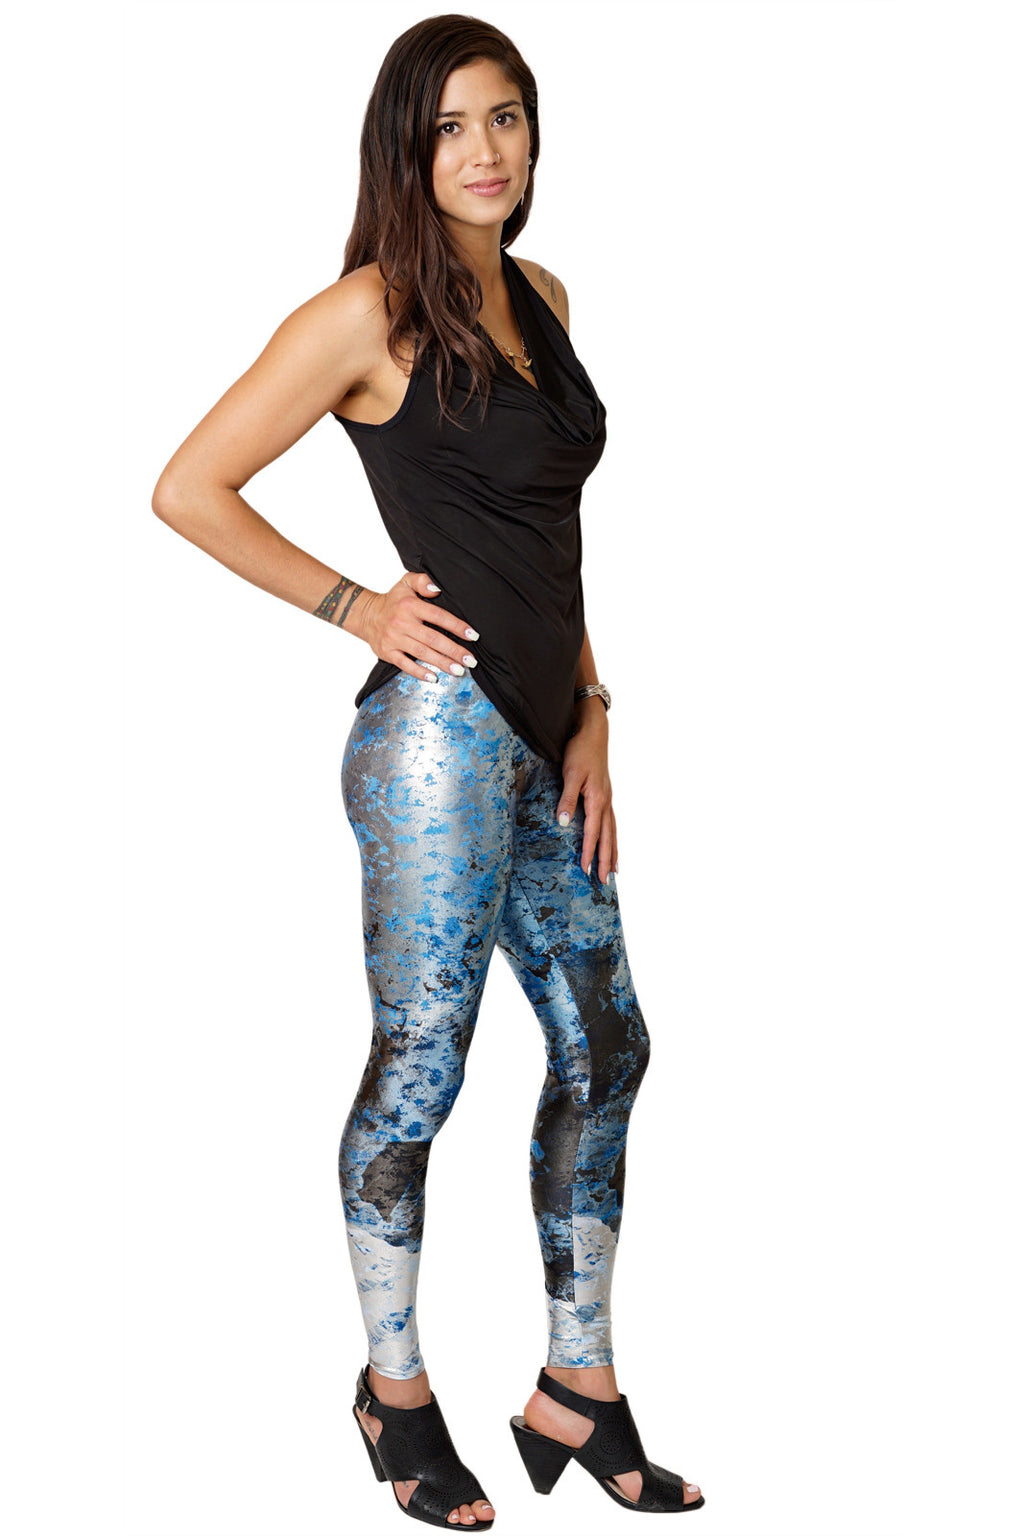 Leggings - Colorful Nature Inspired Athletic Fashion -